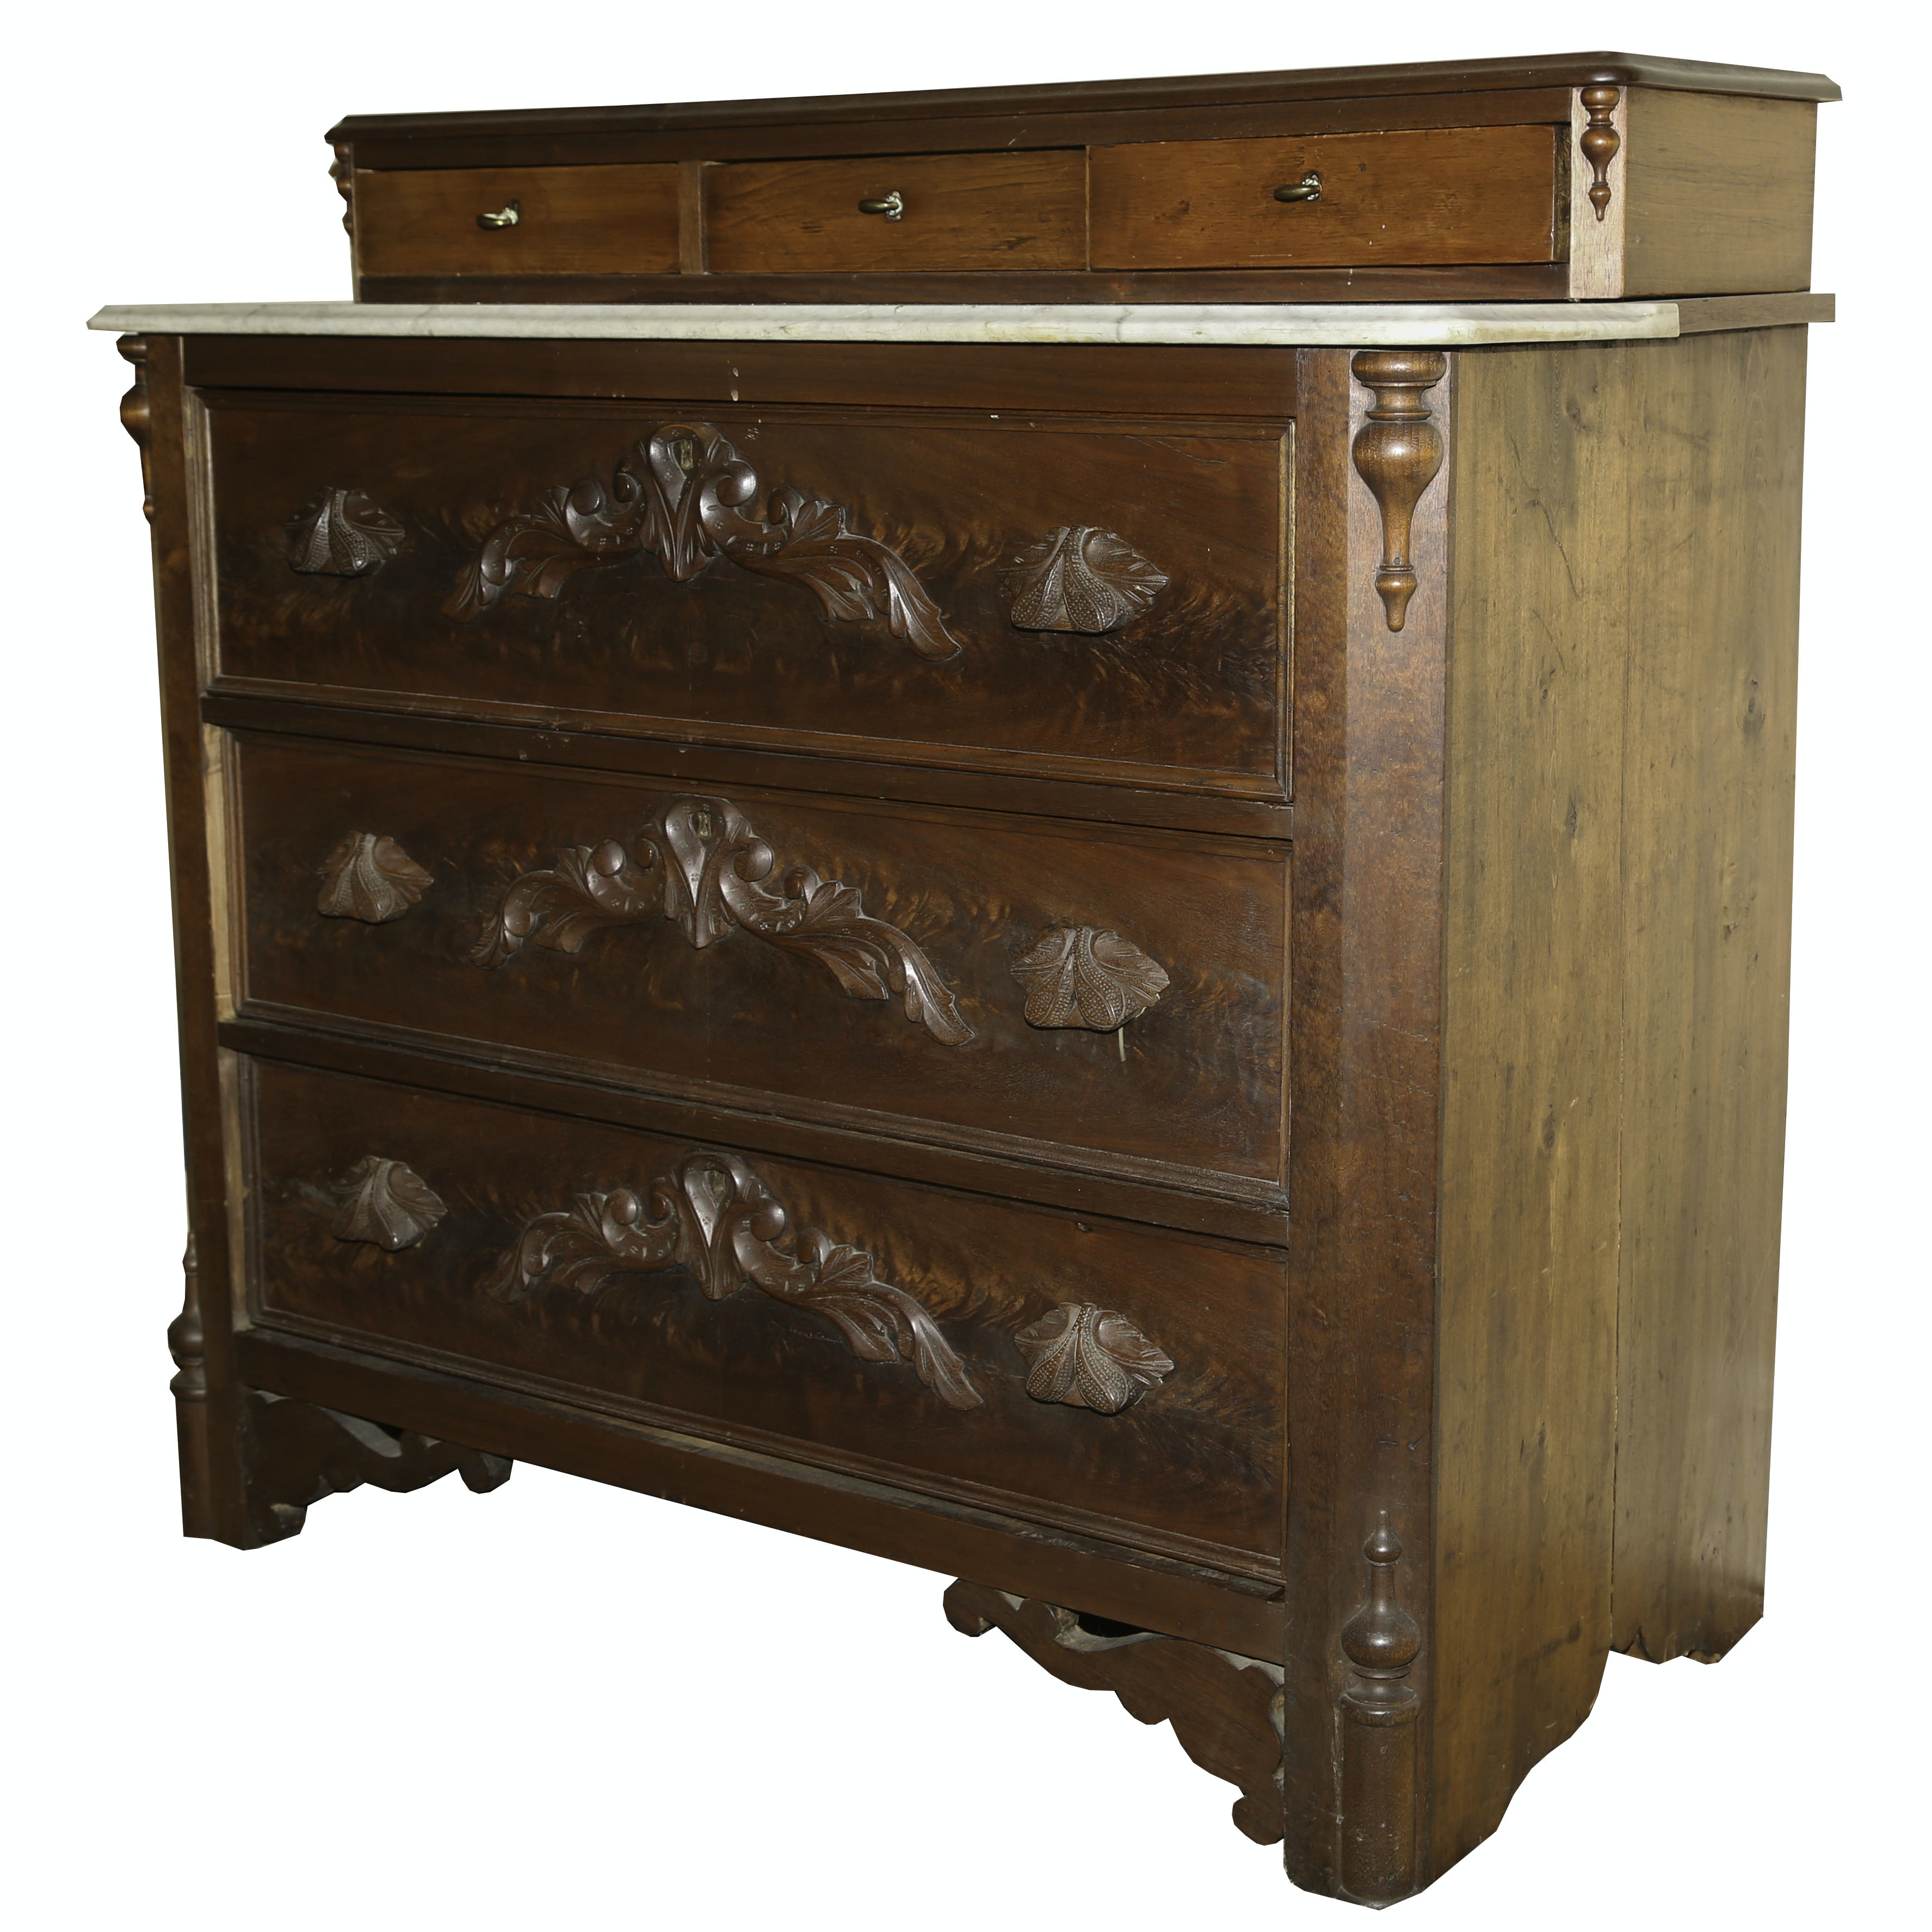 Victorian Mixed Wood and Marble Chest of Drawers, Early 19th Century